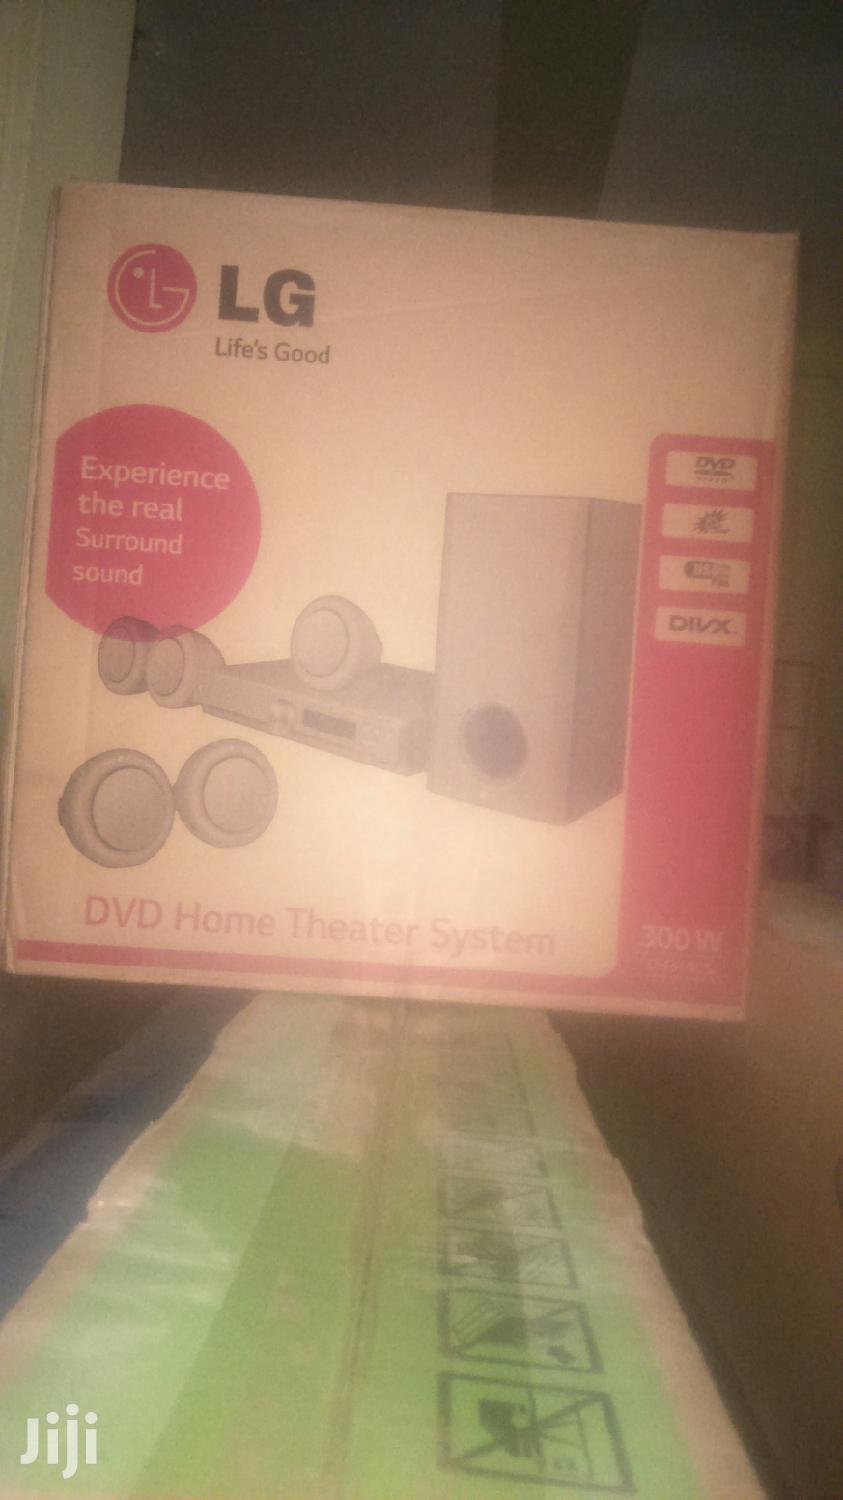 LG DH3140S 5.1ch DVD Home Theater System - Black